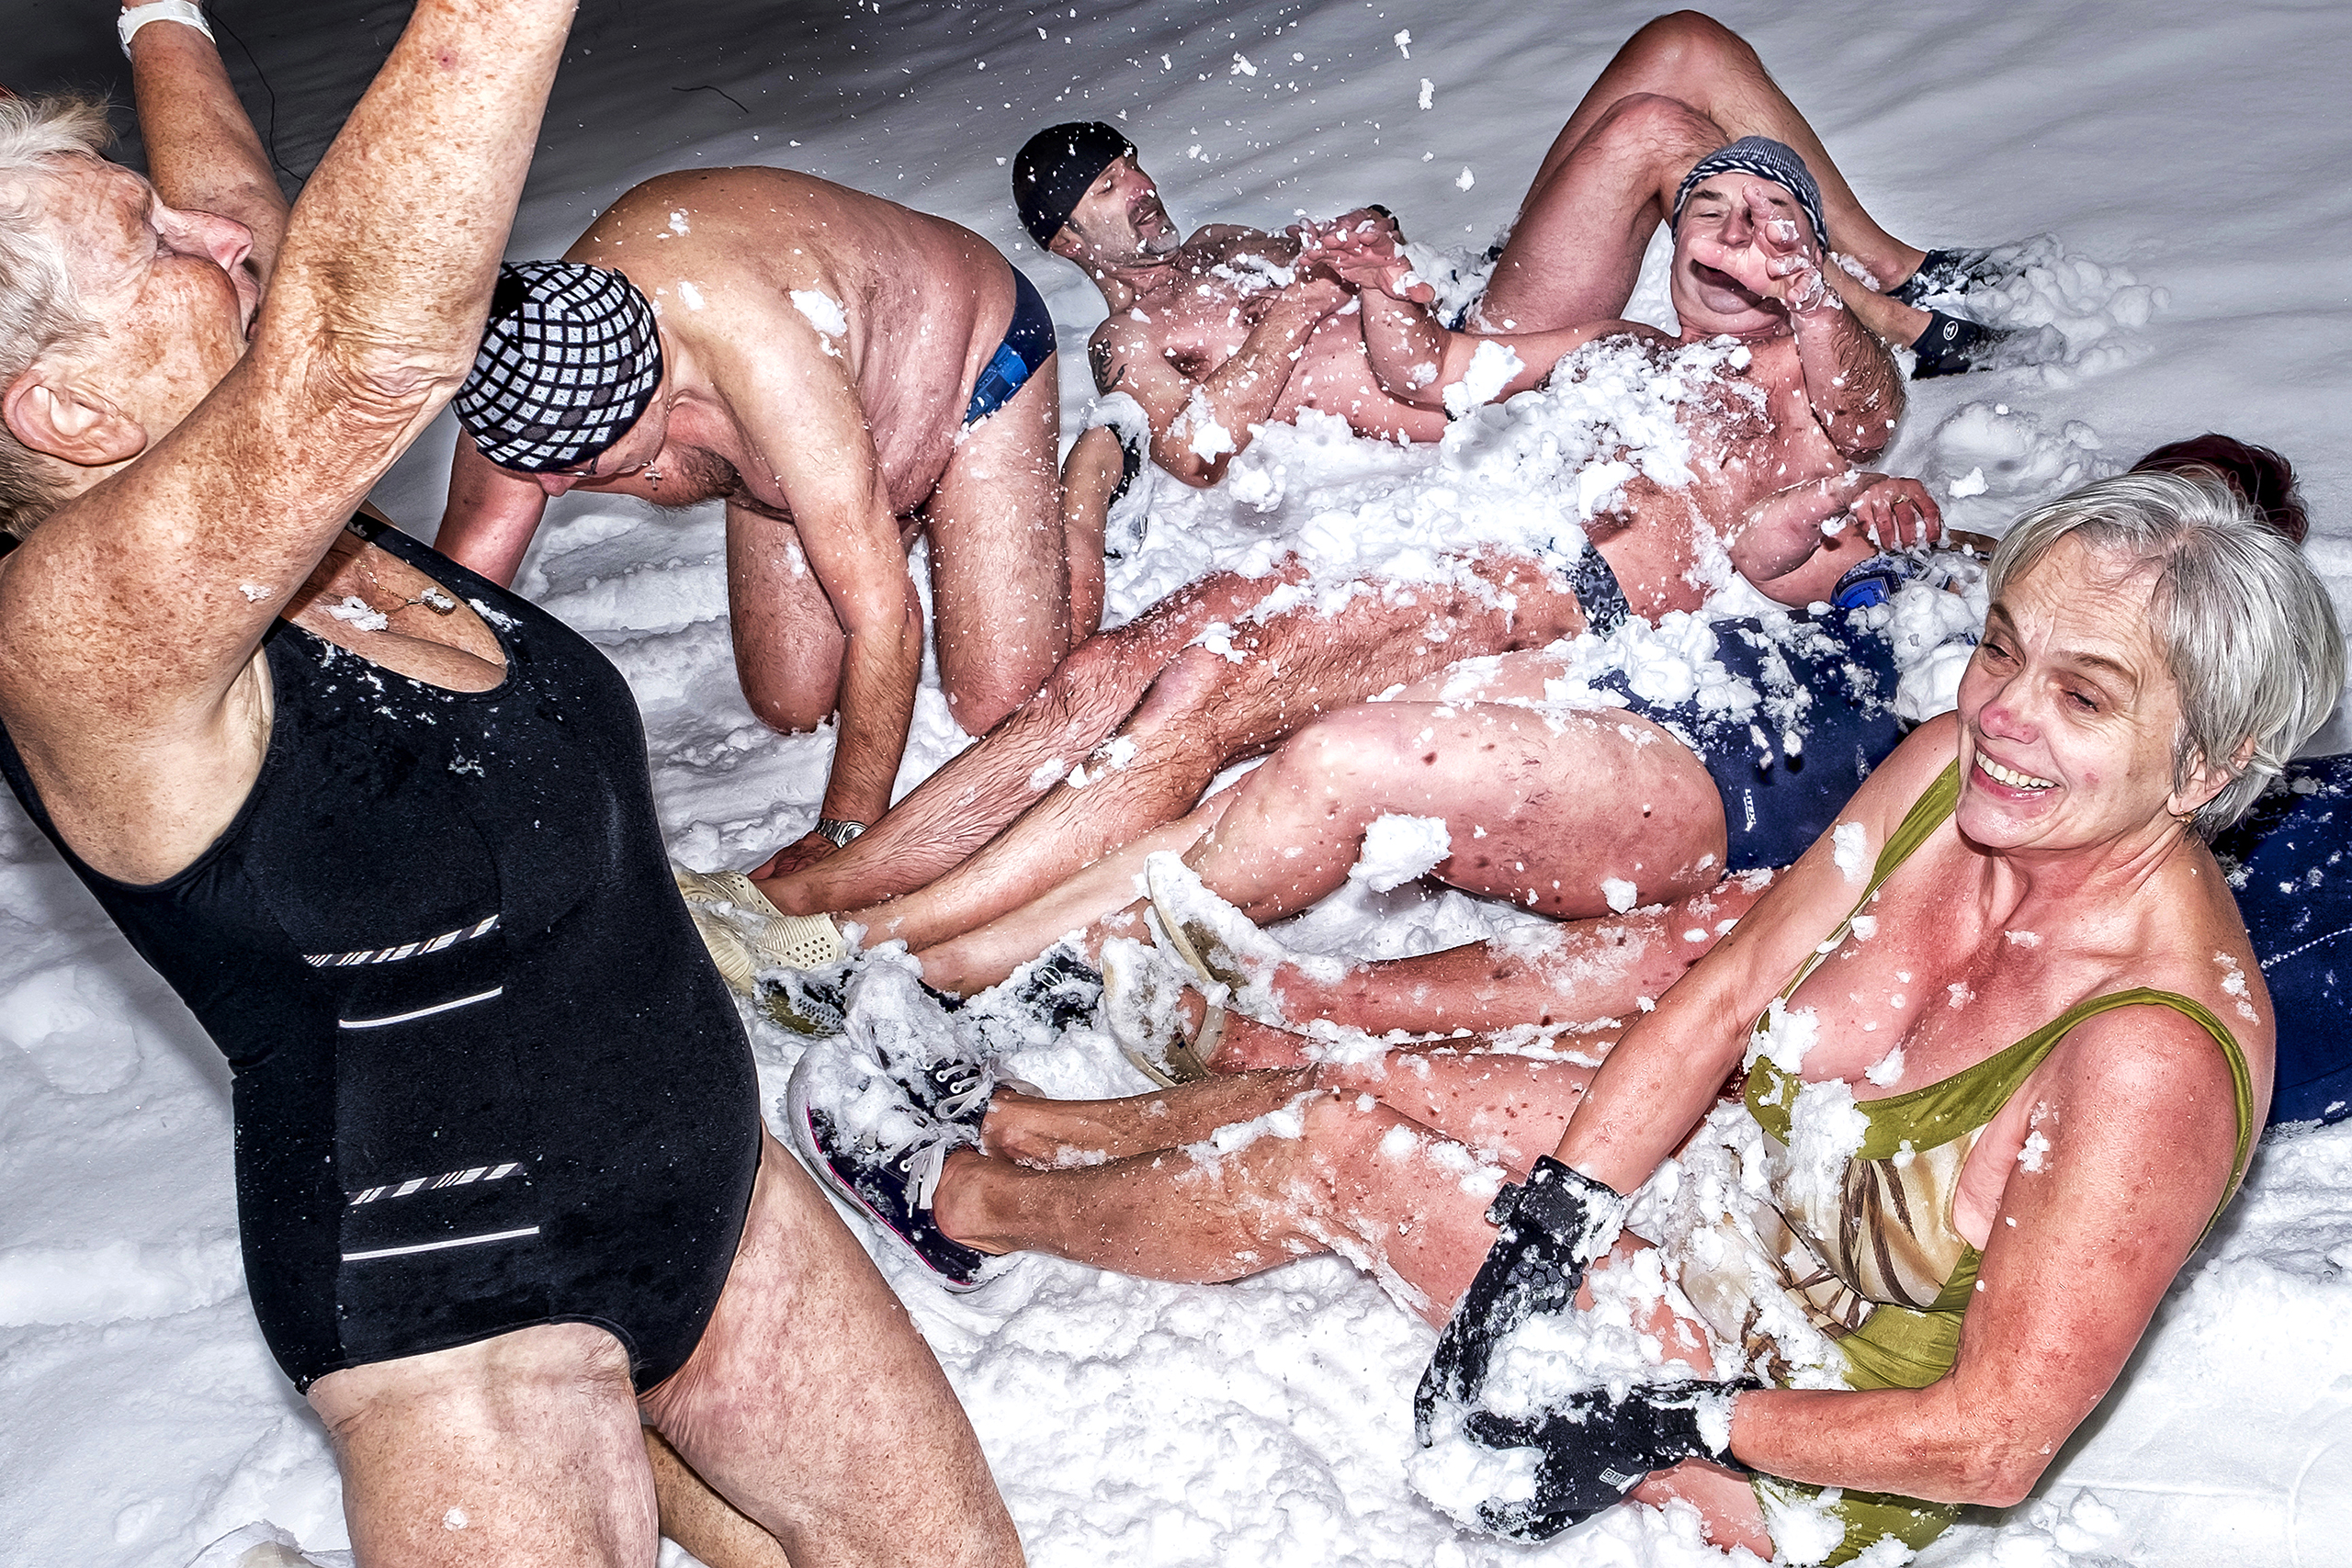 Pardubice cold water swimmers, pictured on Jan. 2 2017, often finish their meet ups by rolling in the snow.